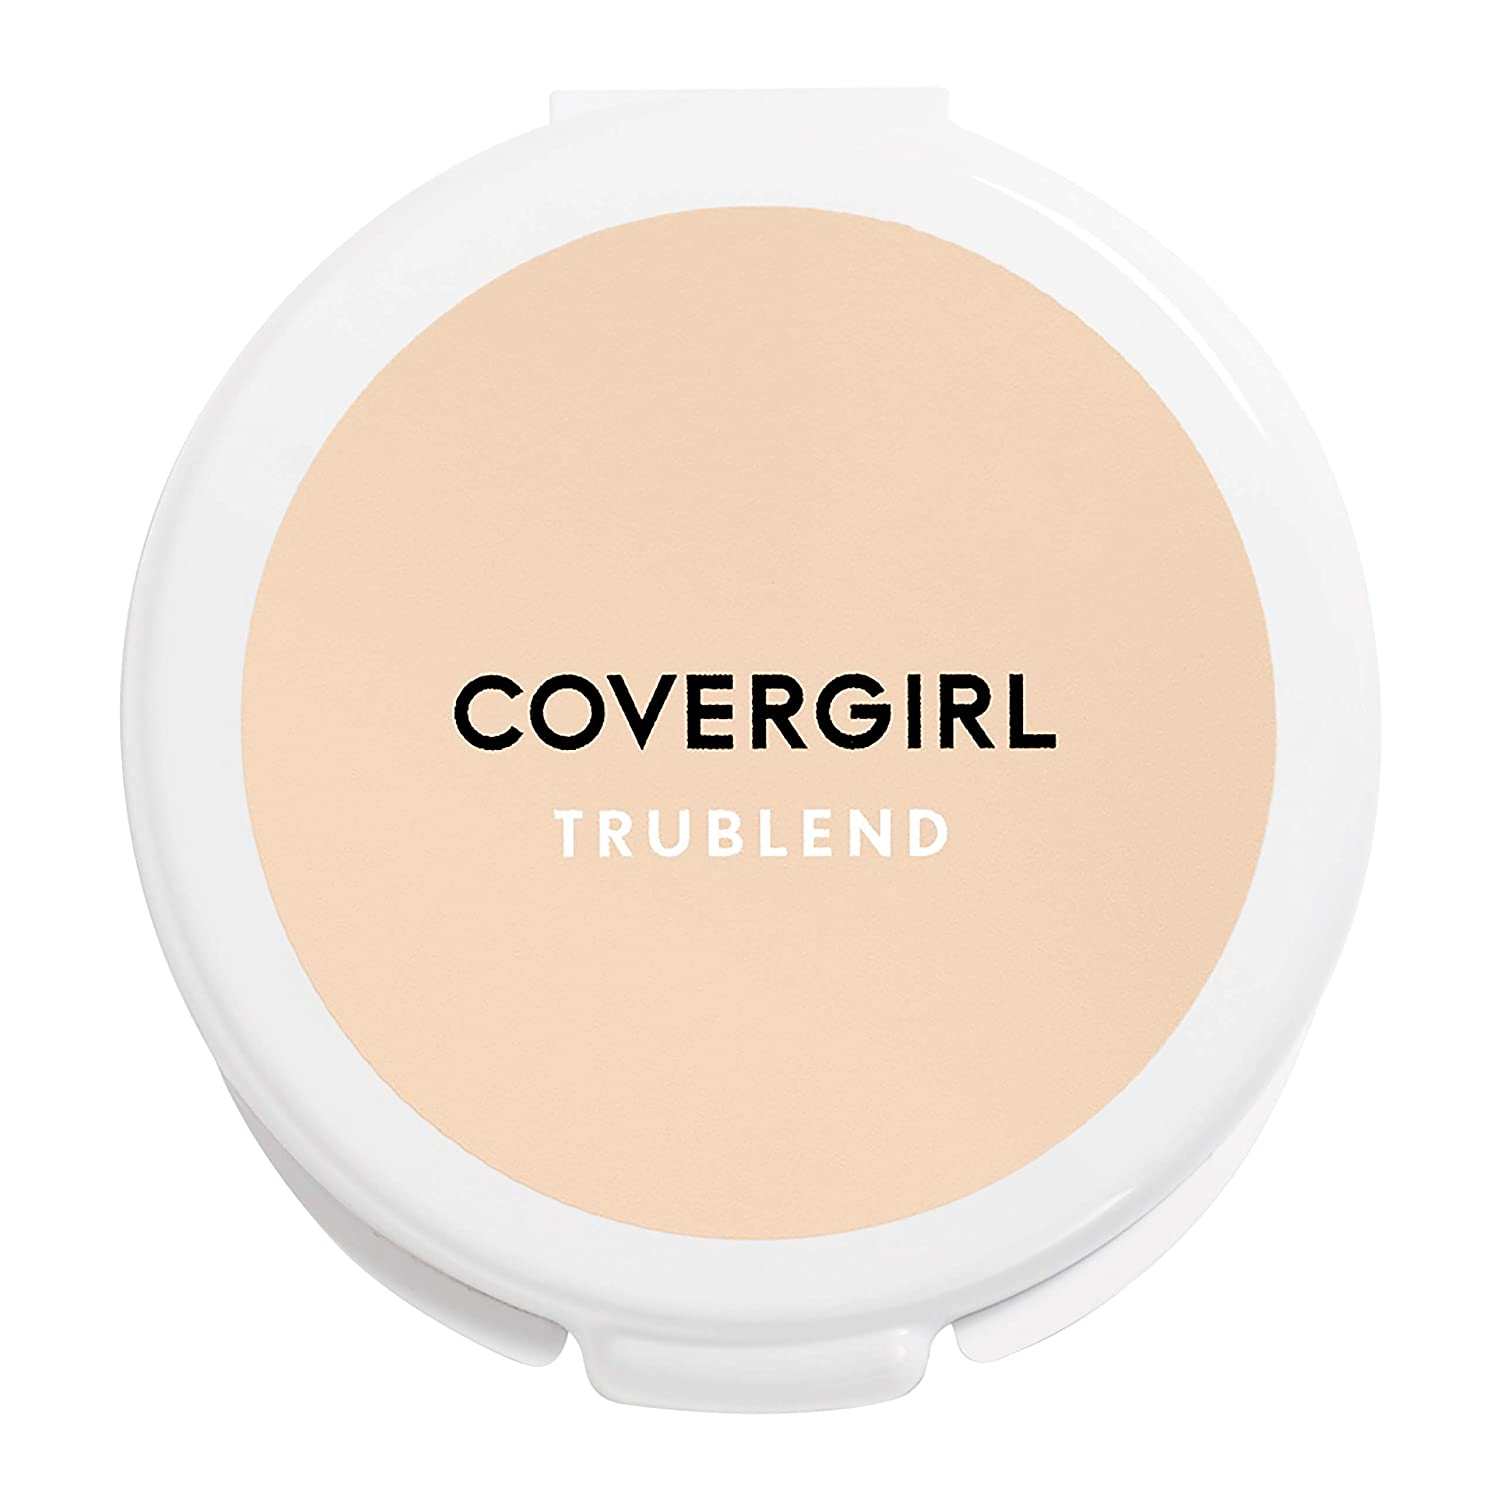 Covergirl Trublend Pressed Powder sold out Spasm price 001 Translucent Fair